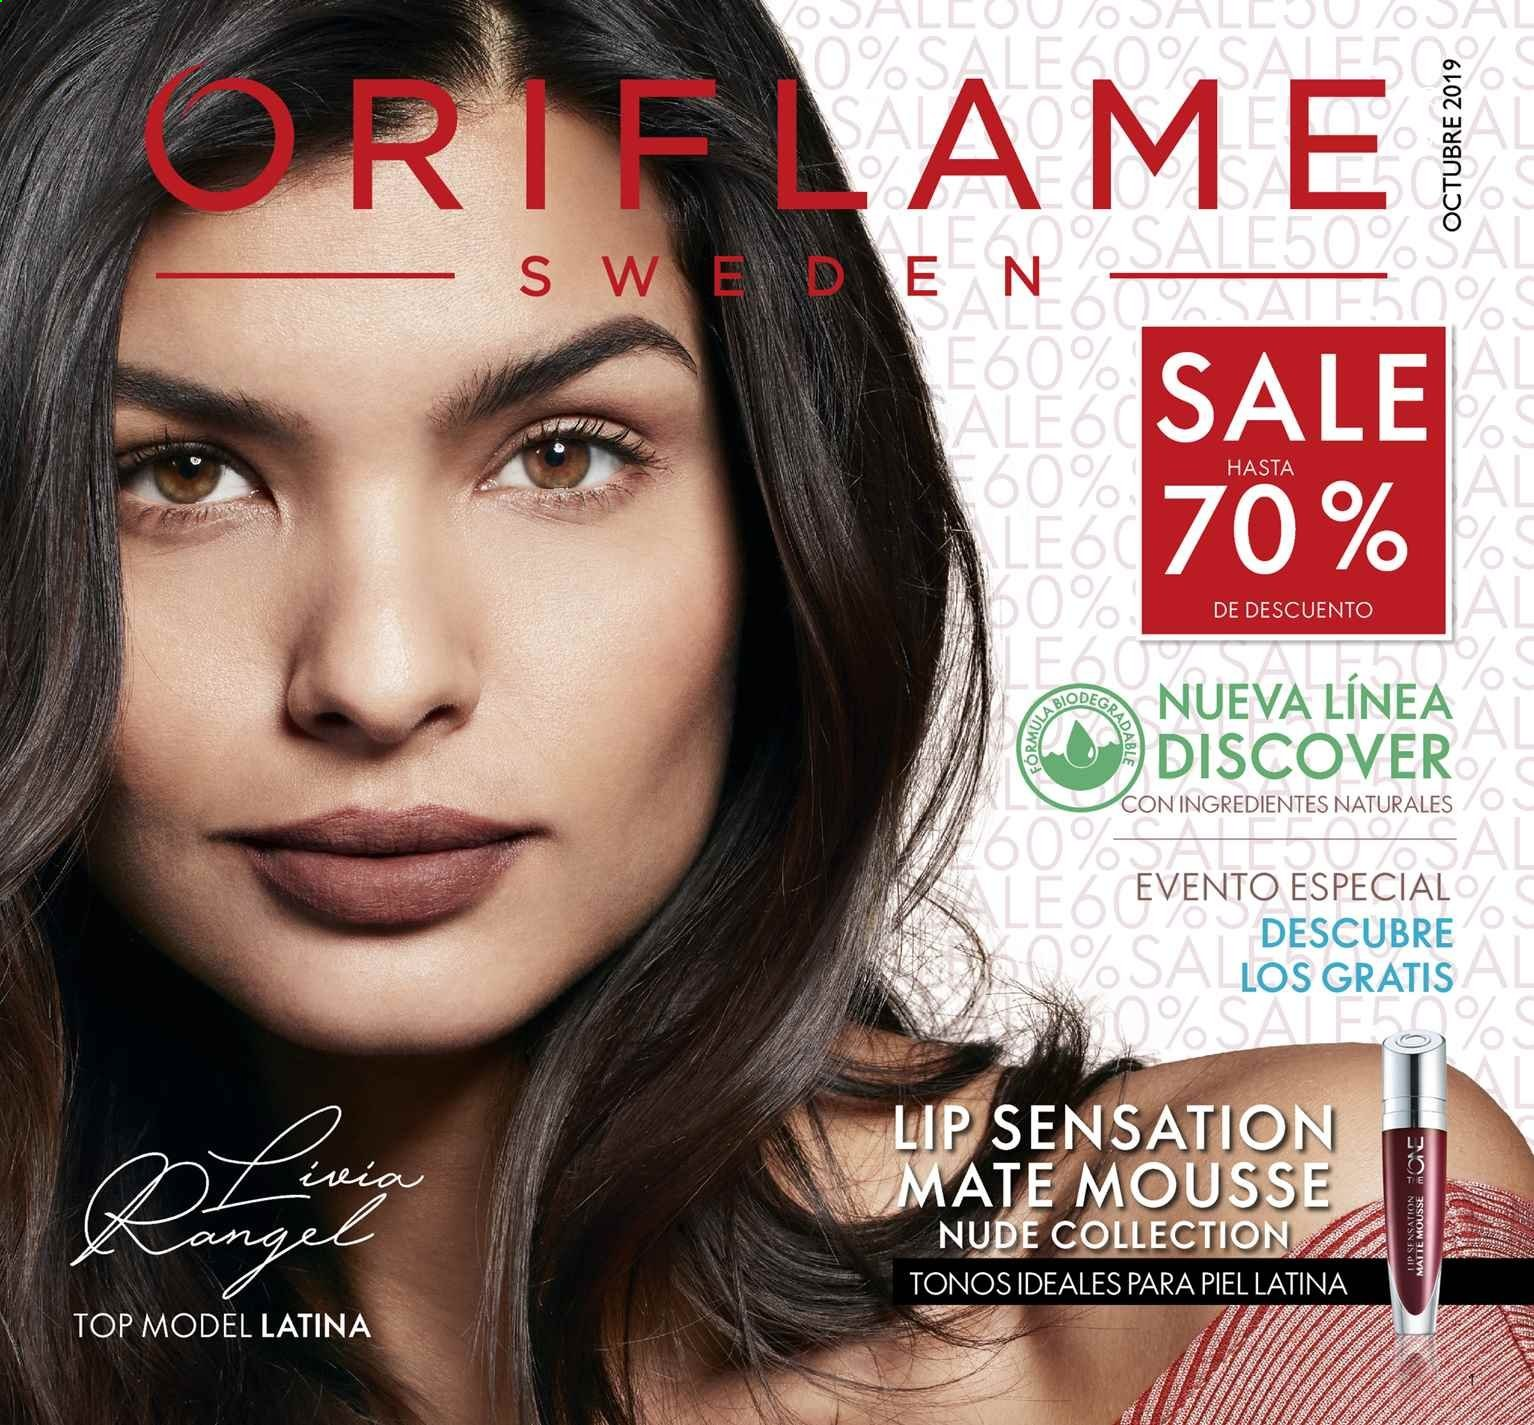 Folleto actual Oriflame - 2.10.2019 - 31.10.2019 - Ventas - mate, sal, mousse. Página 1.